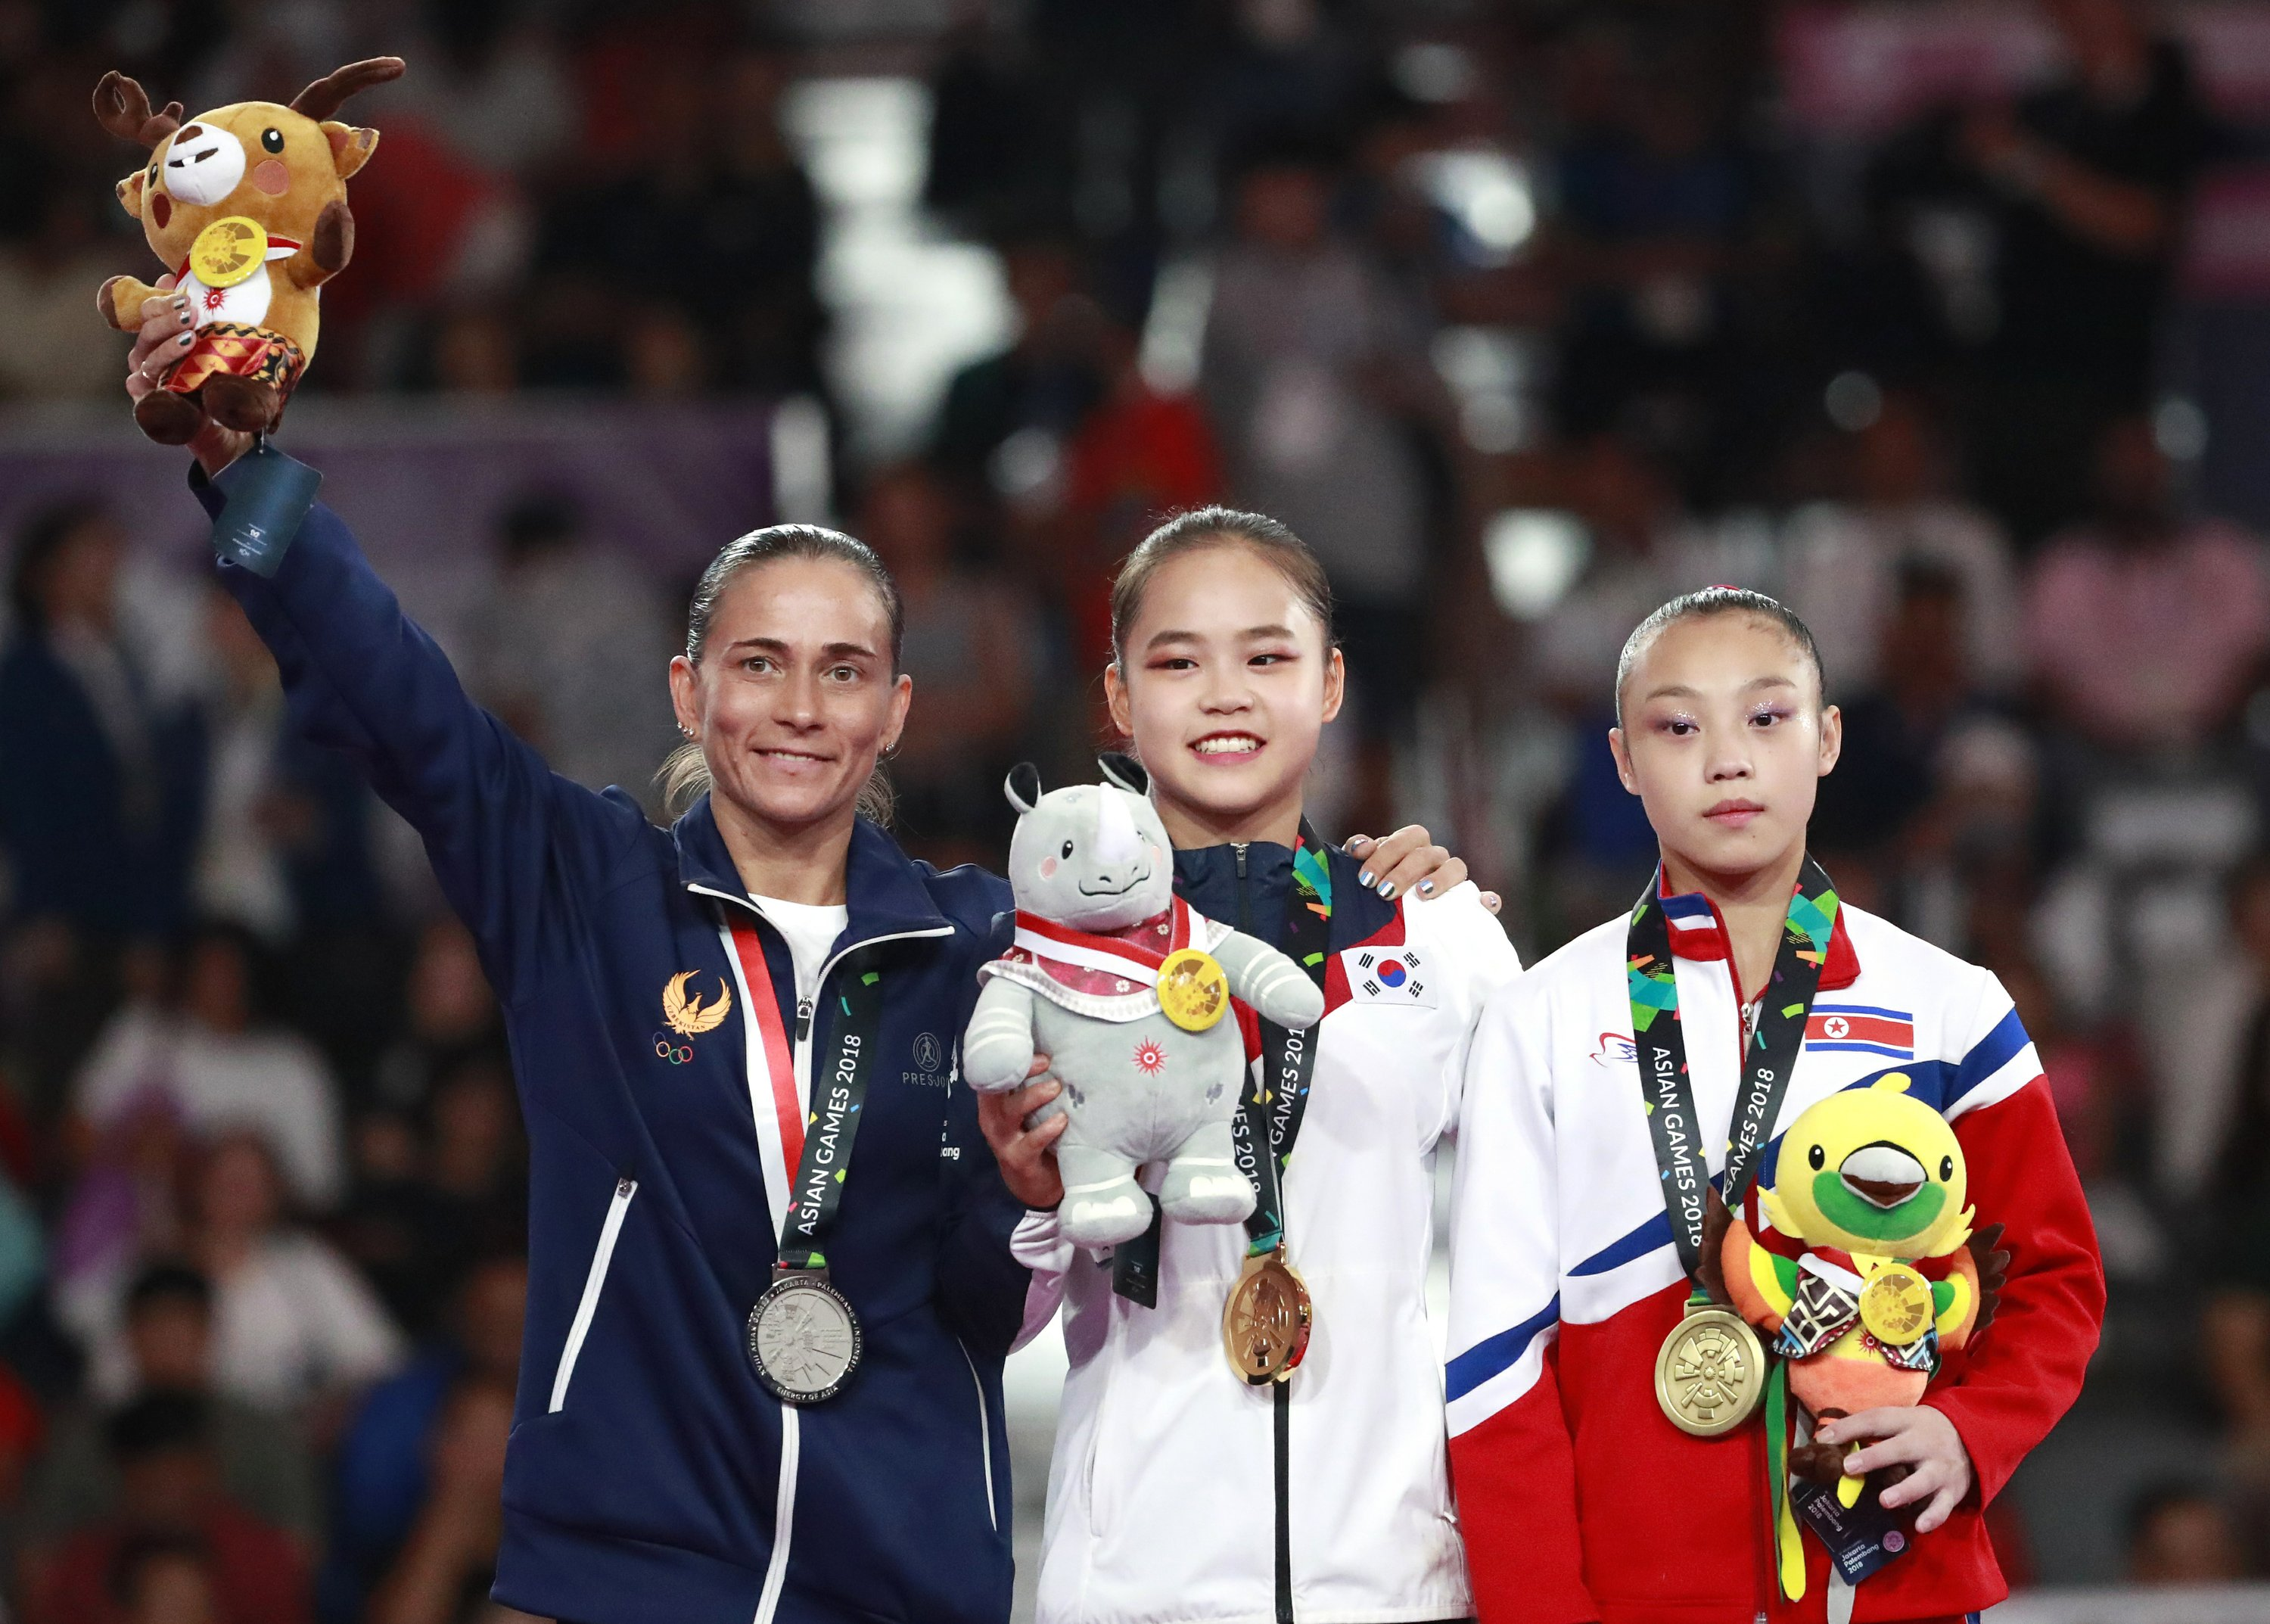 Jakarta Palembang 2020 Asian Games Medals By Country.Silver Lining For Young And Old Athletes At Asian Games